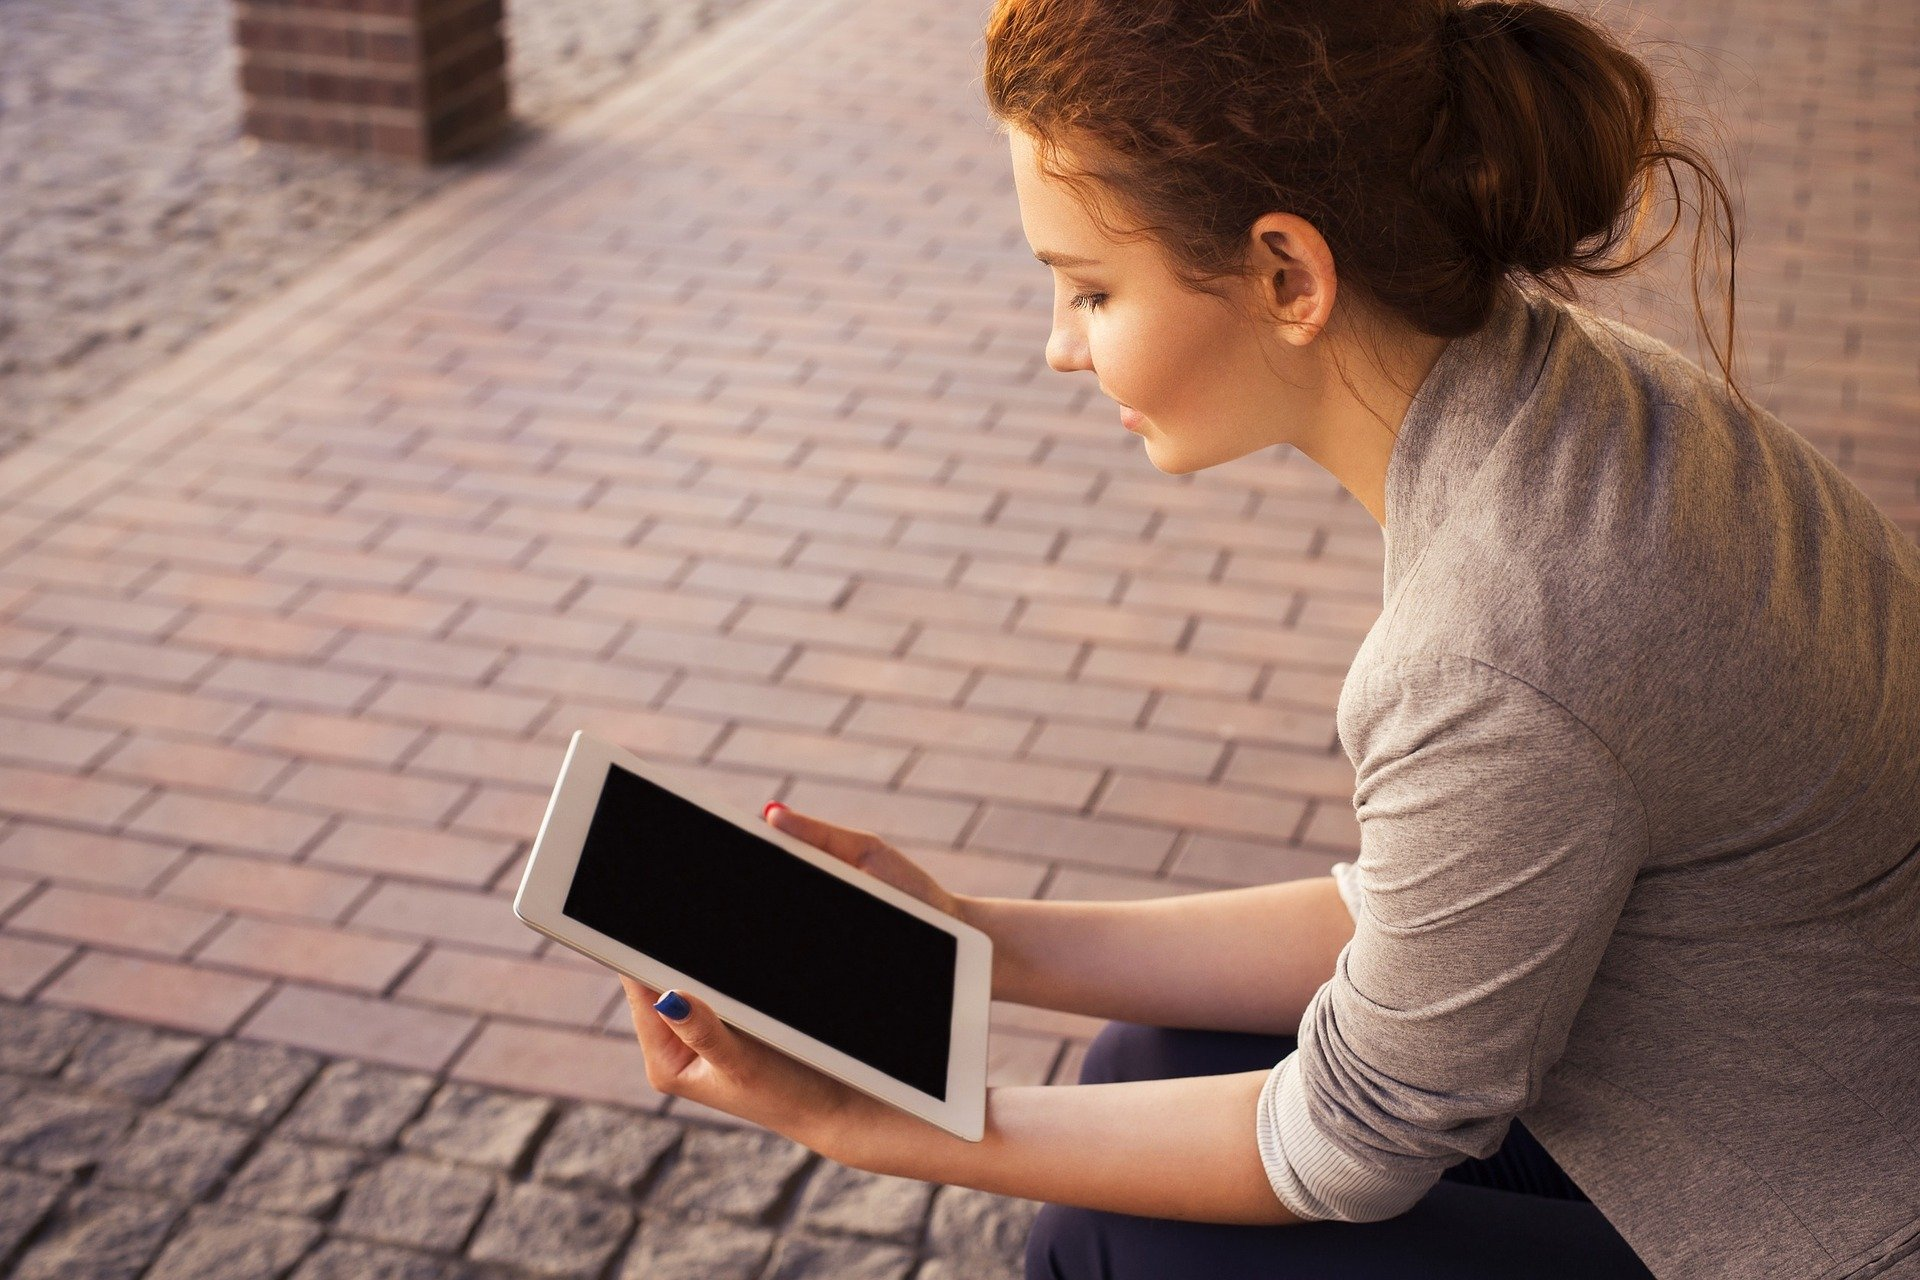 A photo of a woman looking at an iPad, which can be used for distance learning